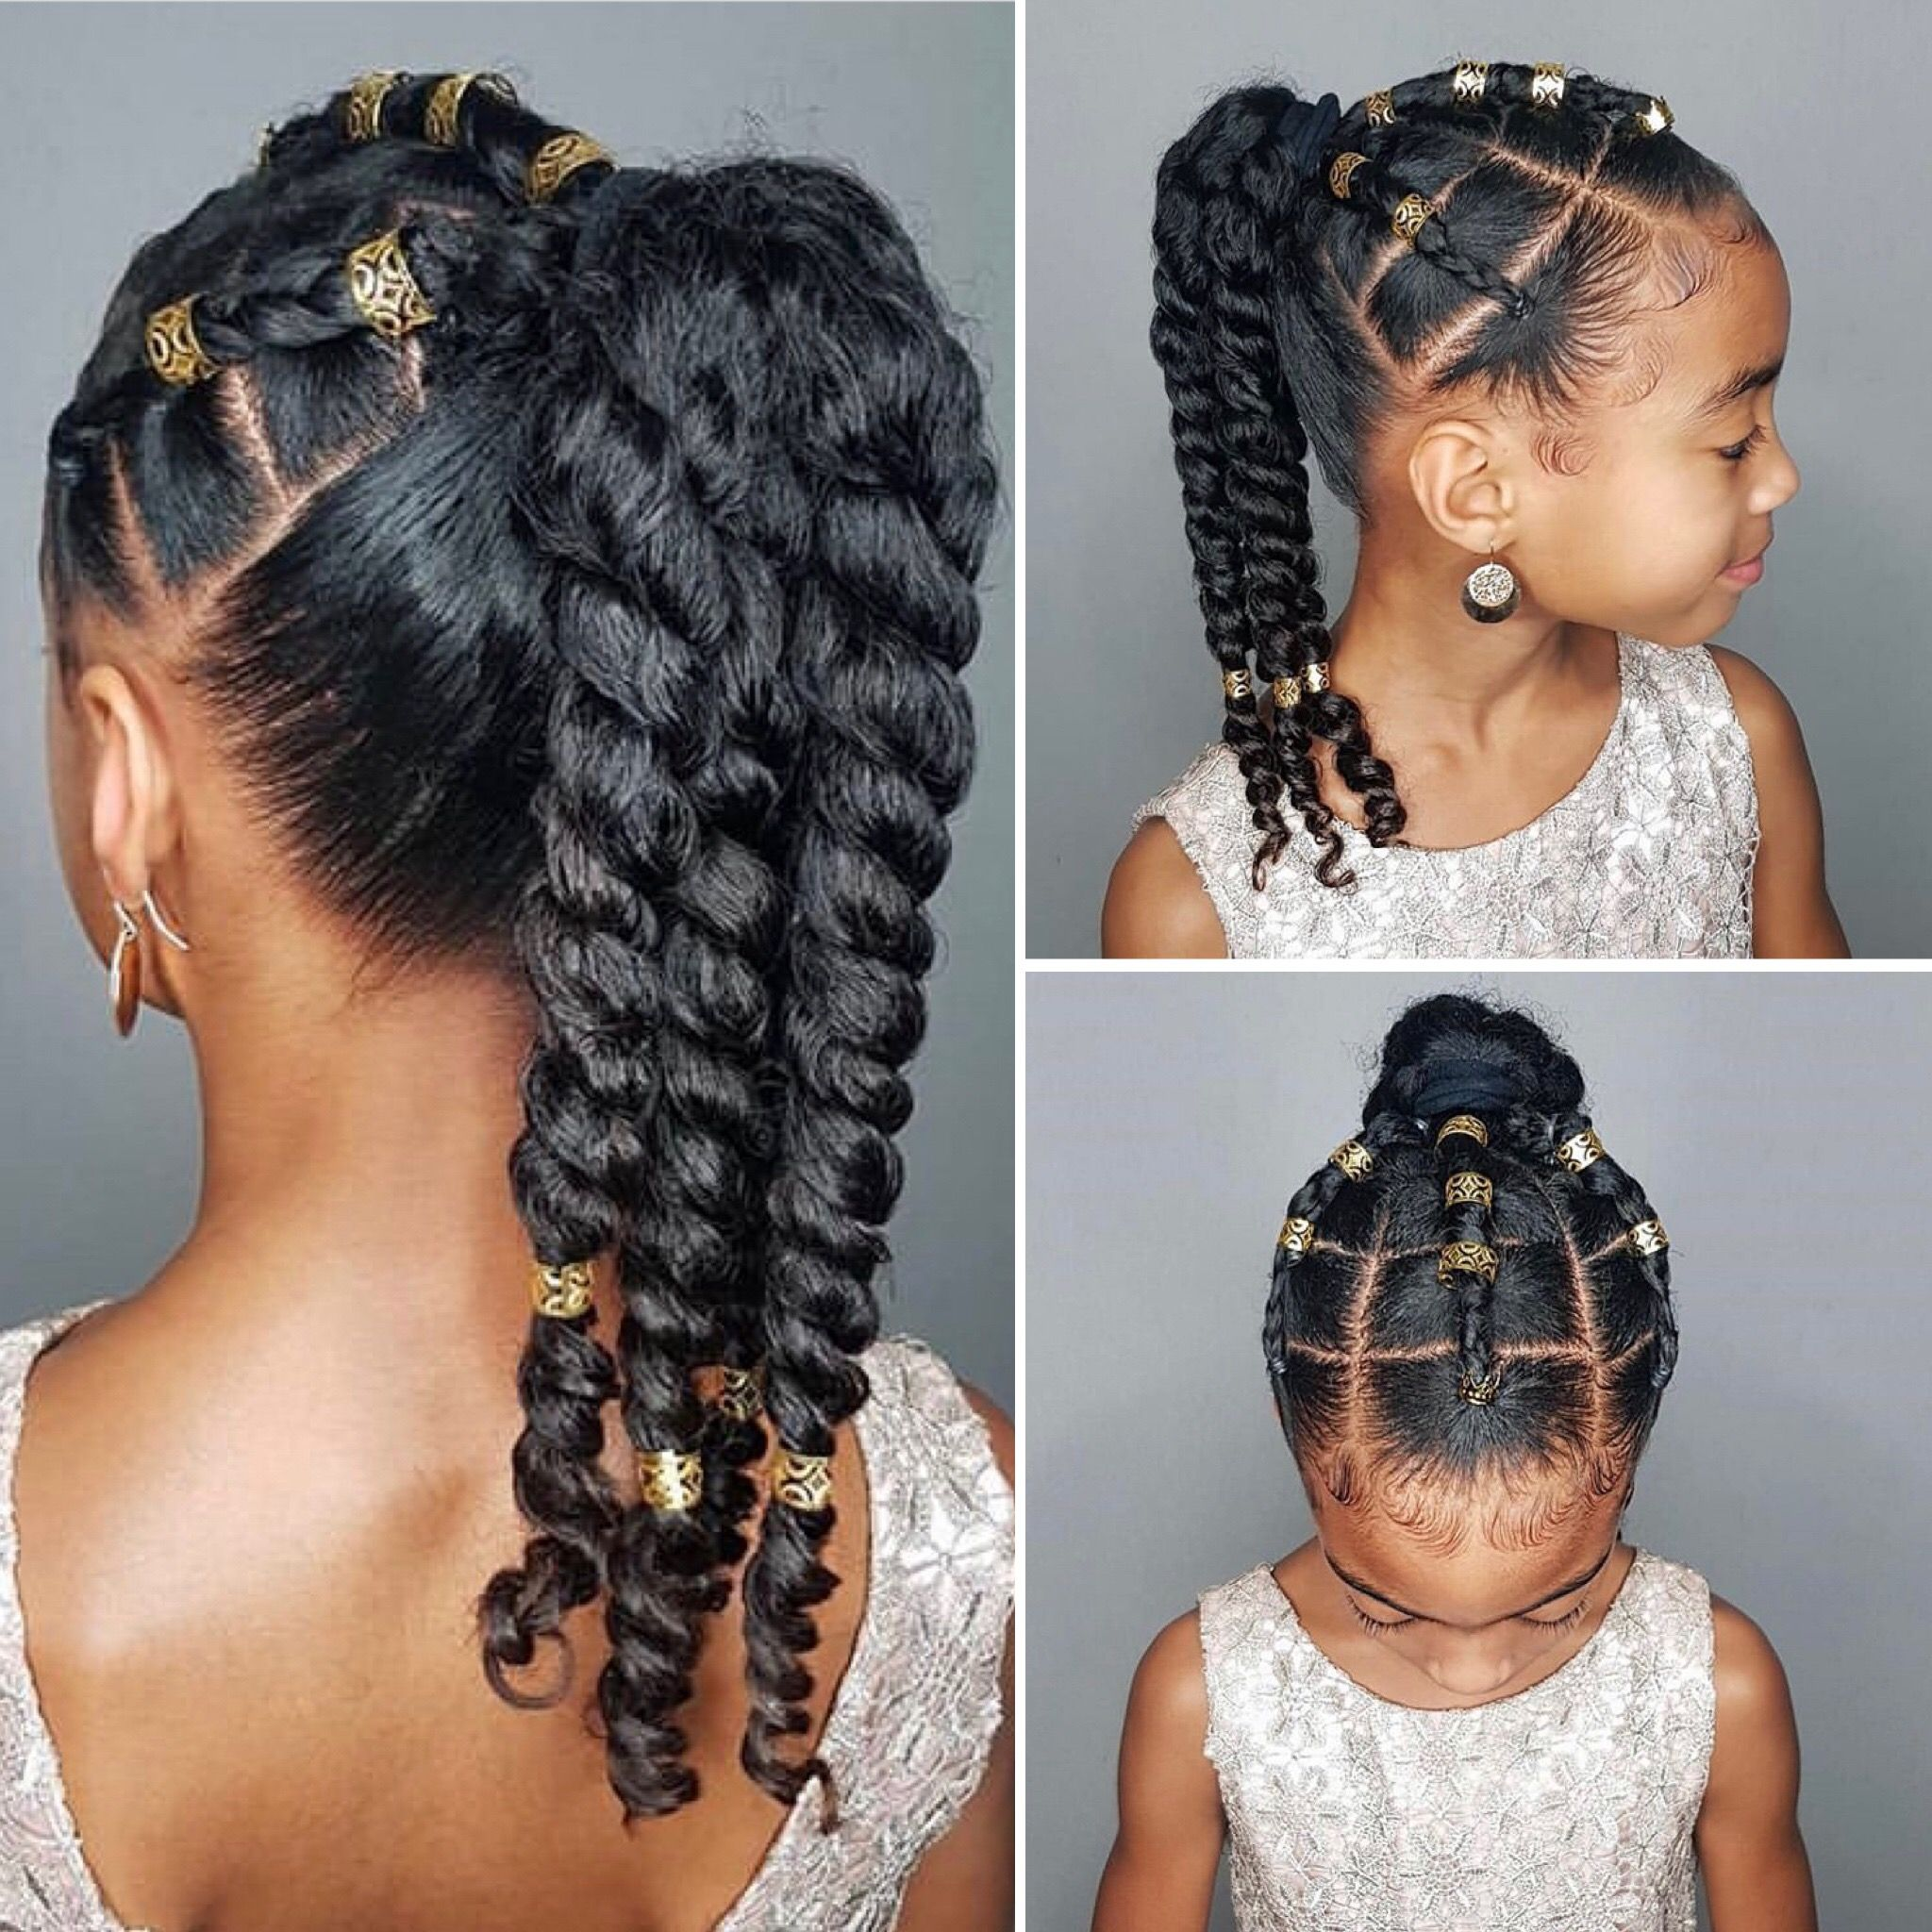 Riityeyayeѕt Eurodolls In 2019 Natural Hair Styles Girls